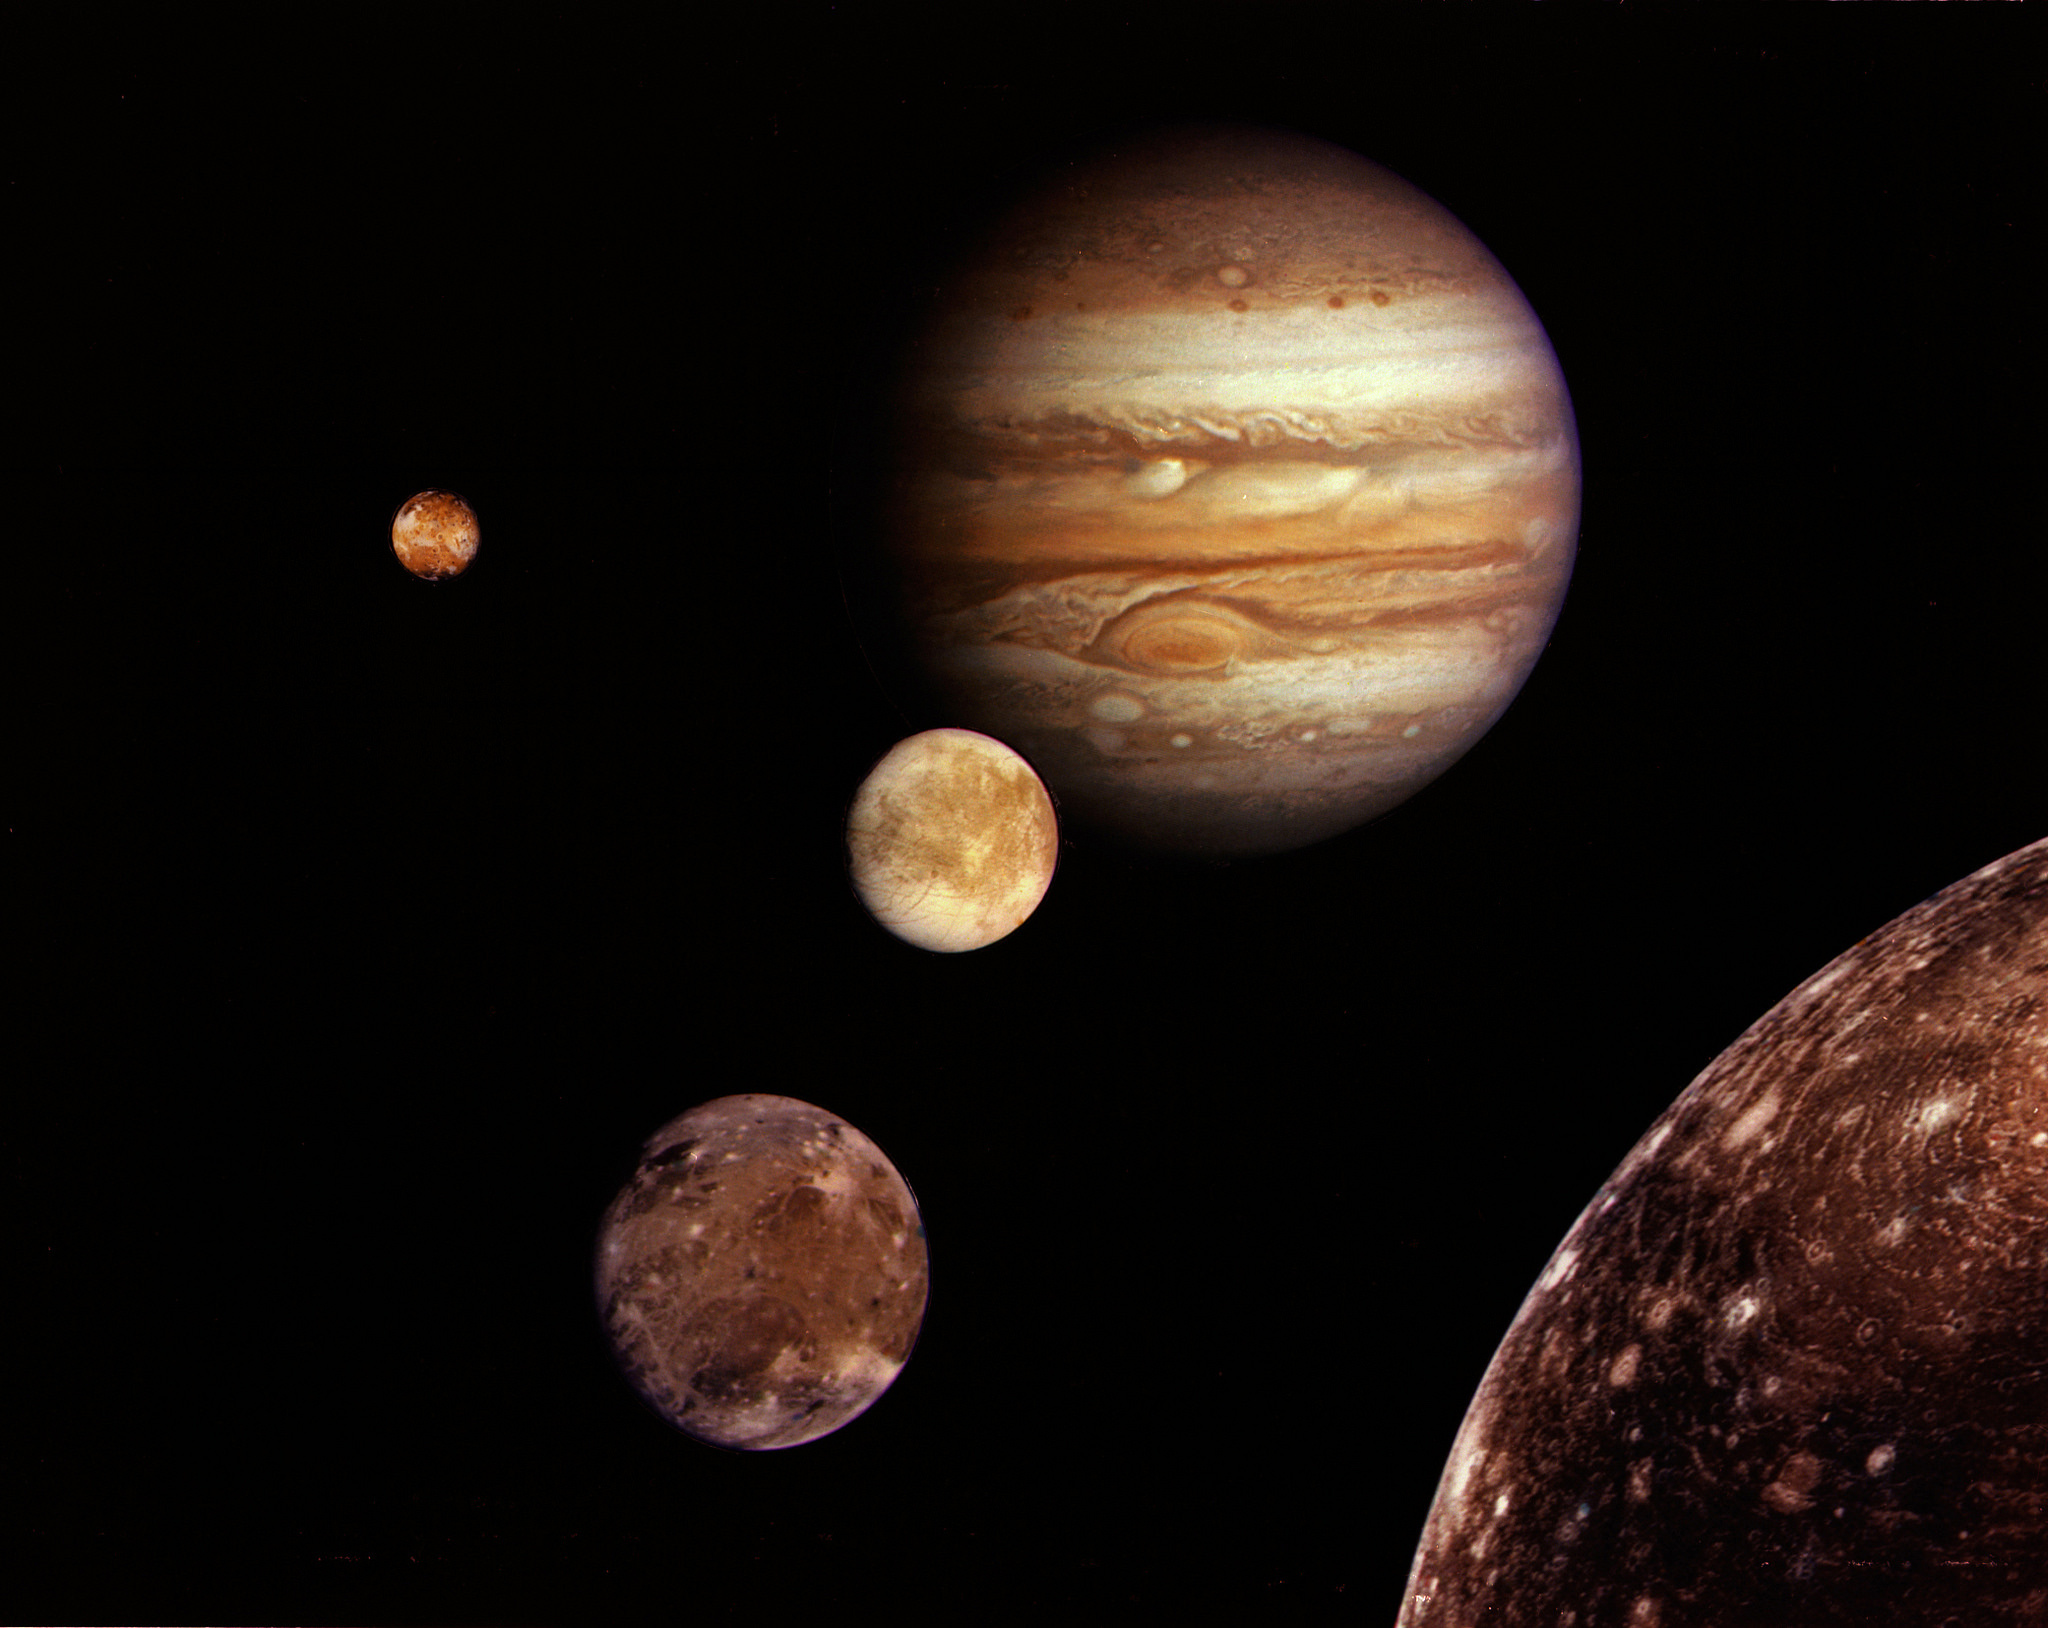 On the picture is the planet Jupiter and its 4 moons.